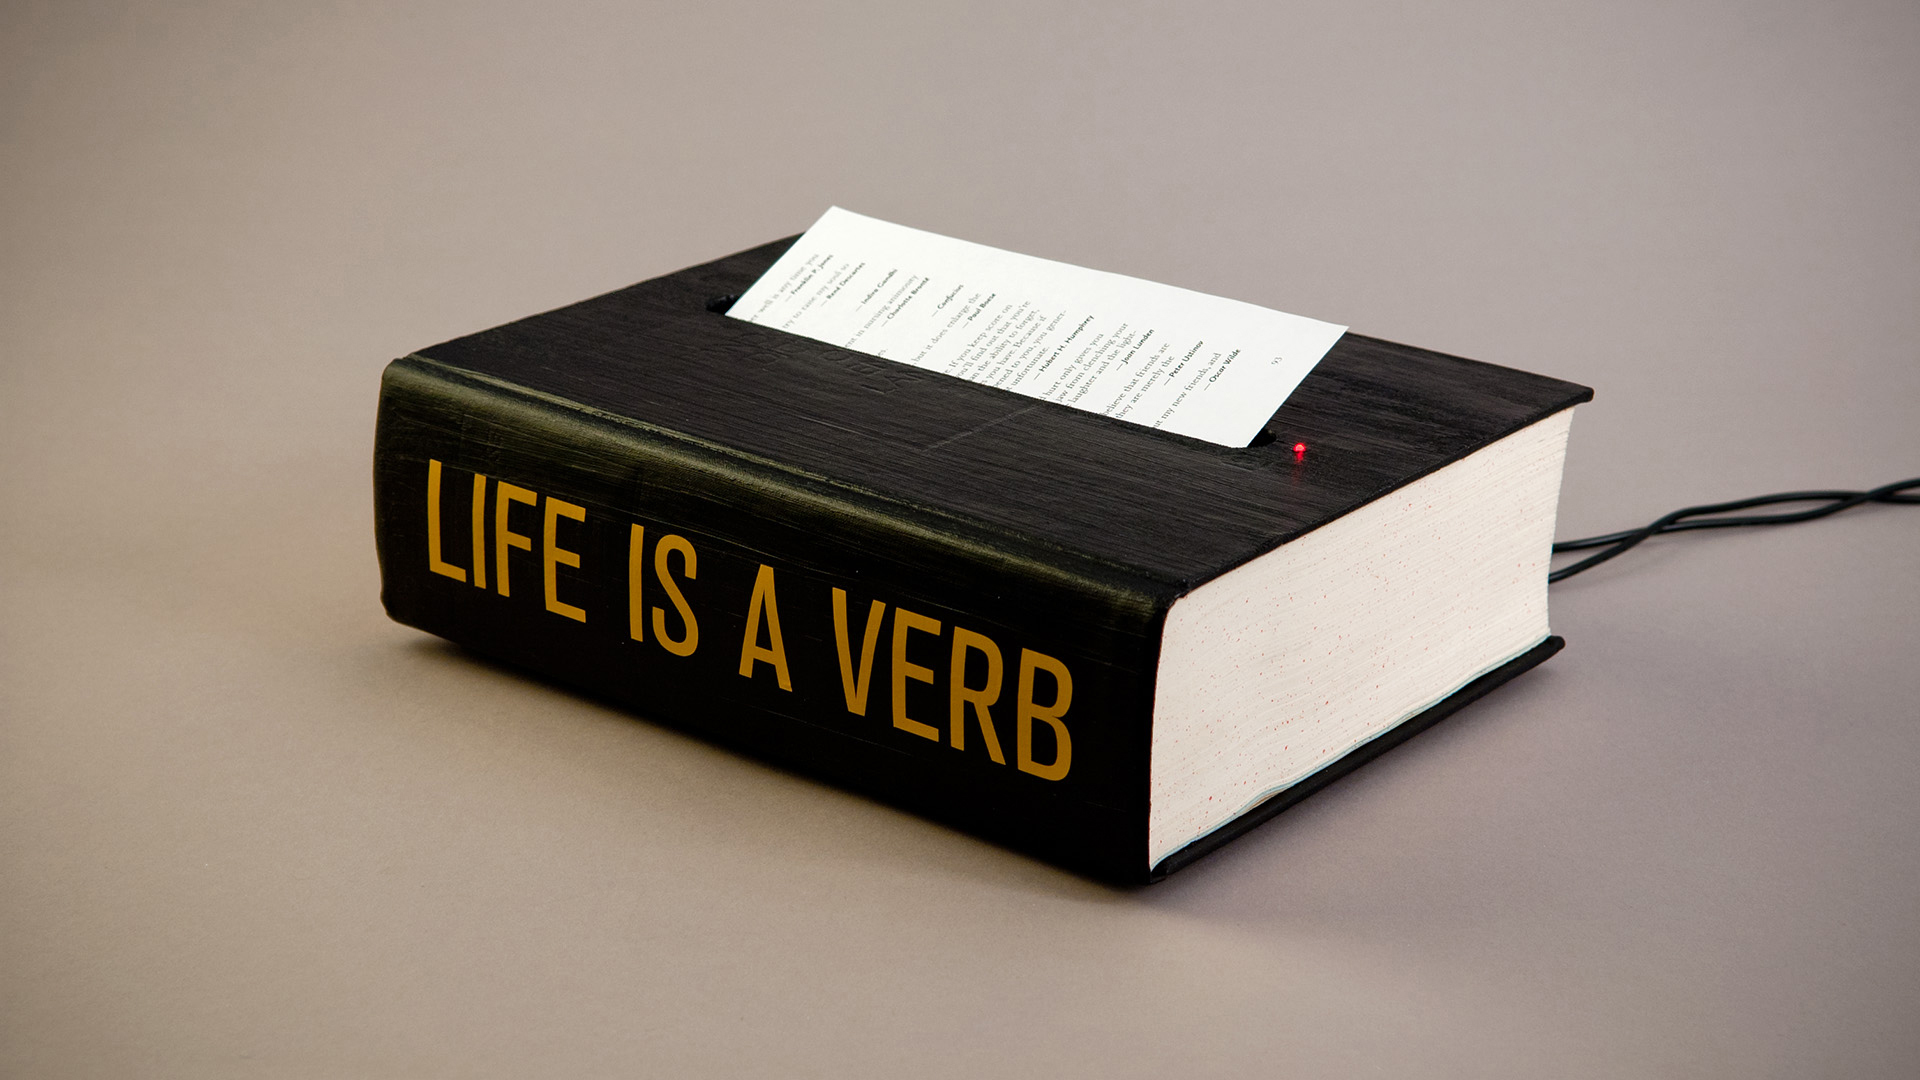 ©2012, Jing Zhou, Life is a Verb: The Book of Spoken Wisdom